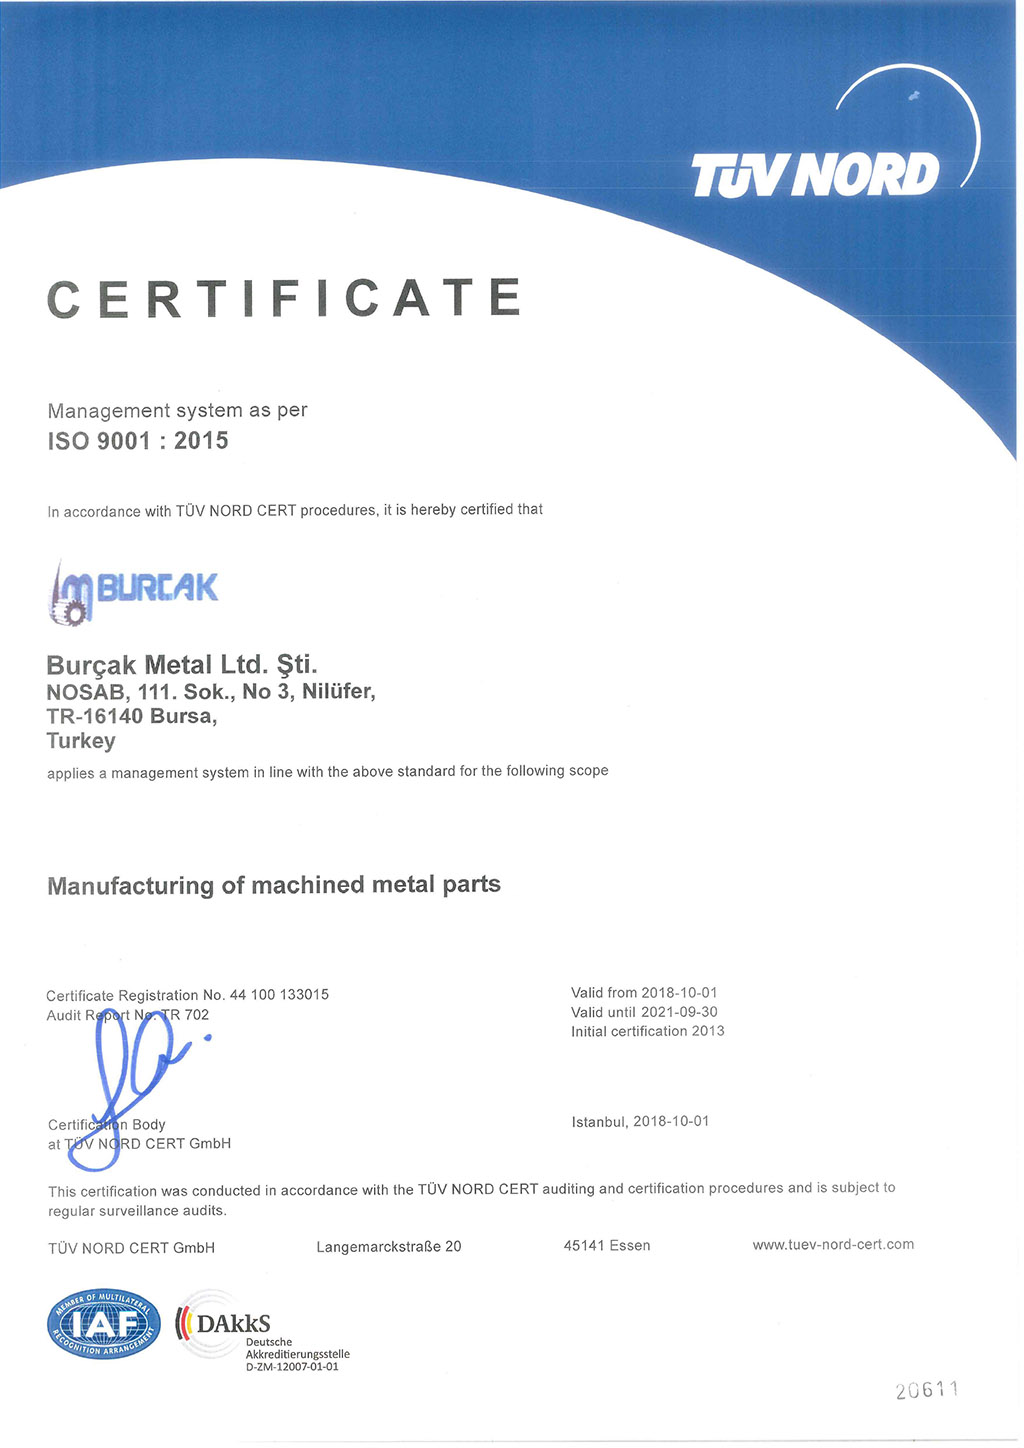 ISO 9001:2015 QUALITY MANAGEMENT SYSTEM CERTIFICATE